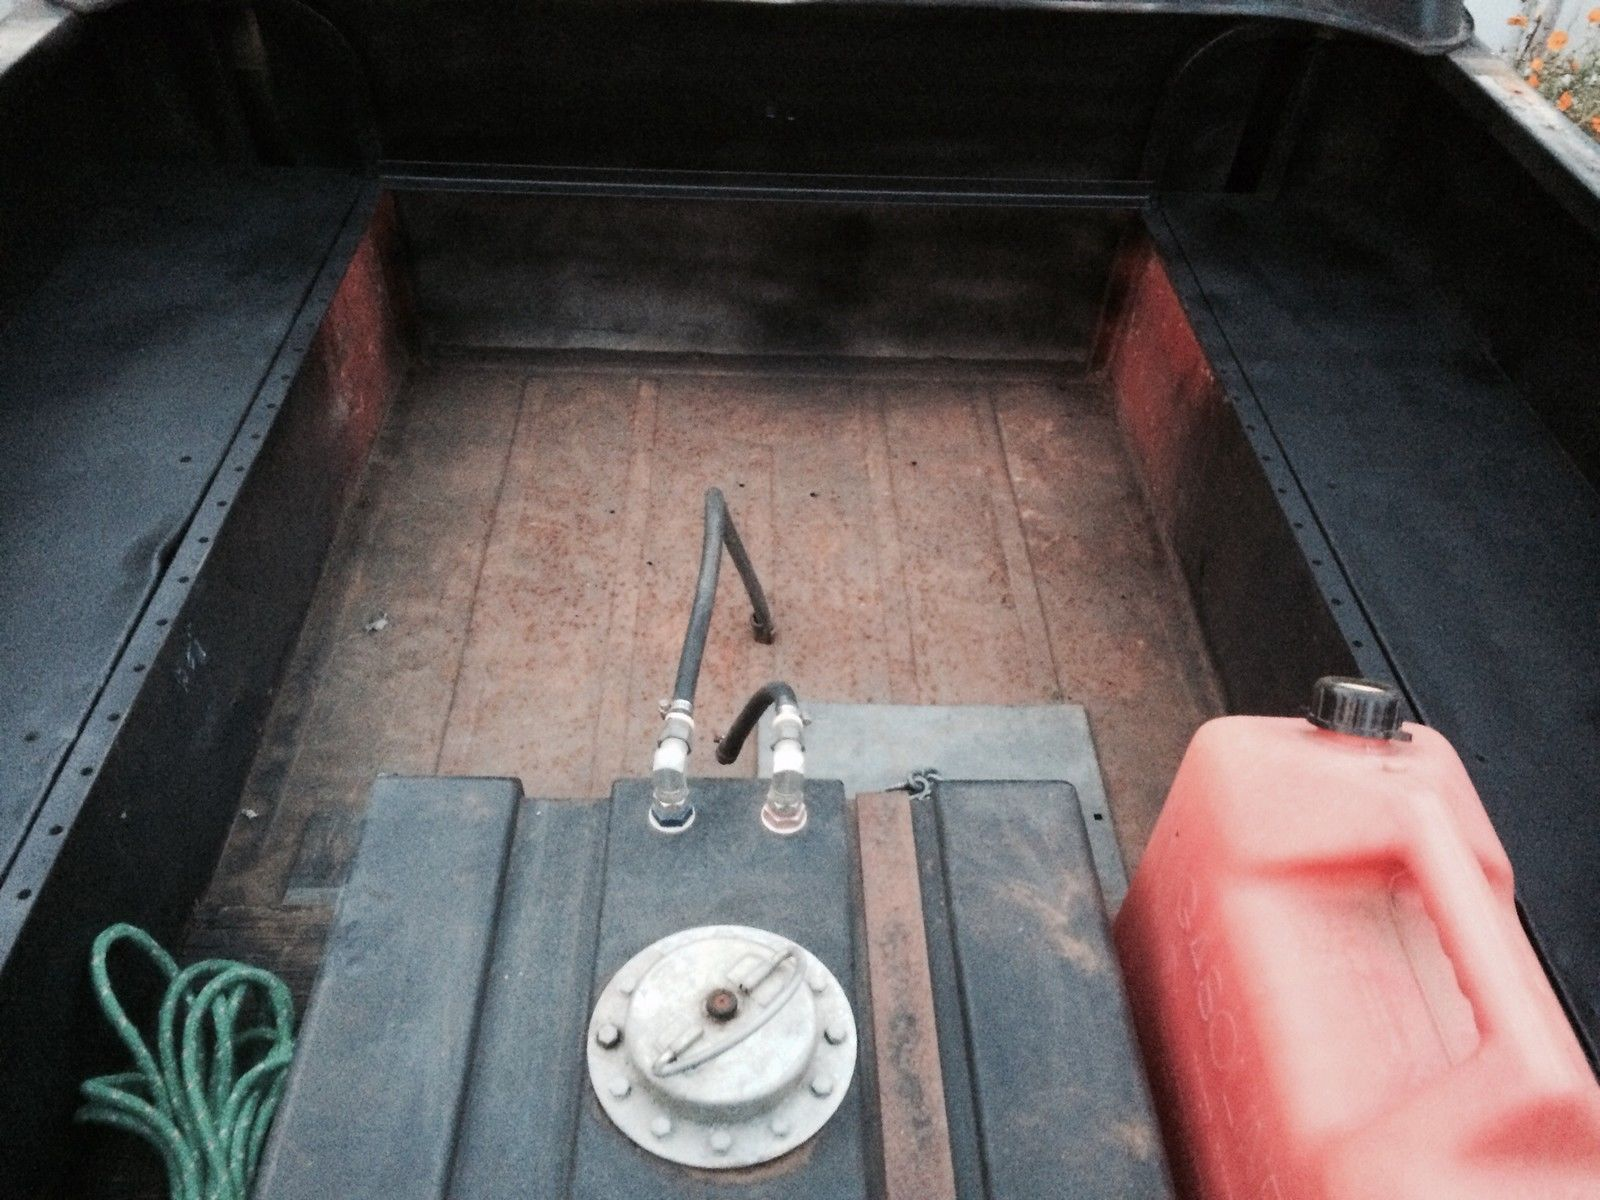 1967 Scout 800 4X4 with a 266 V8, gears, suspension, brake